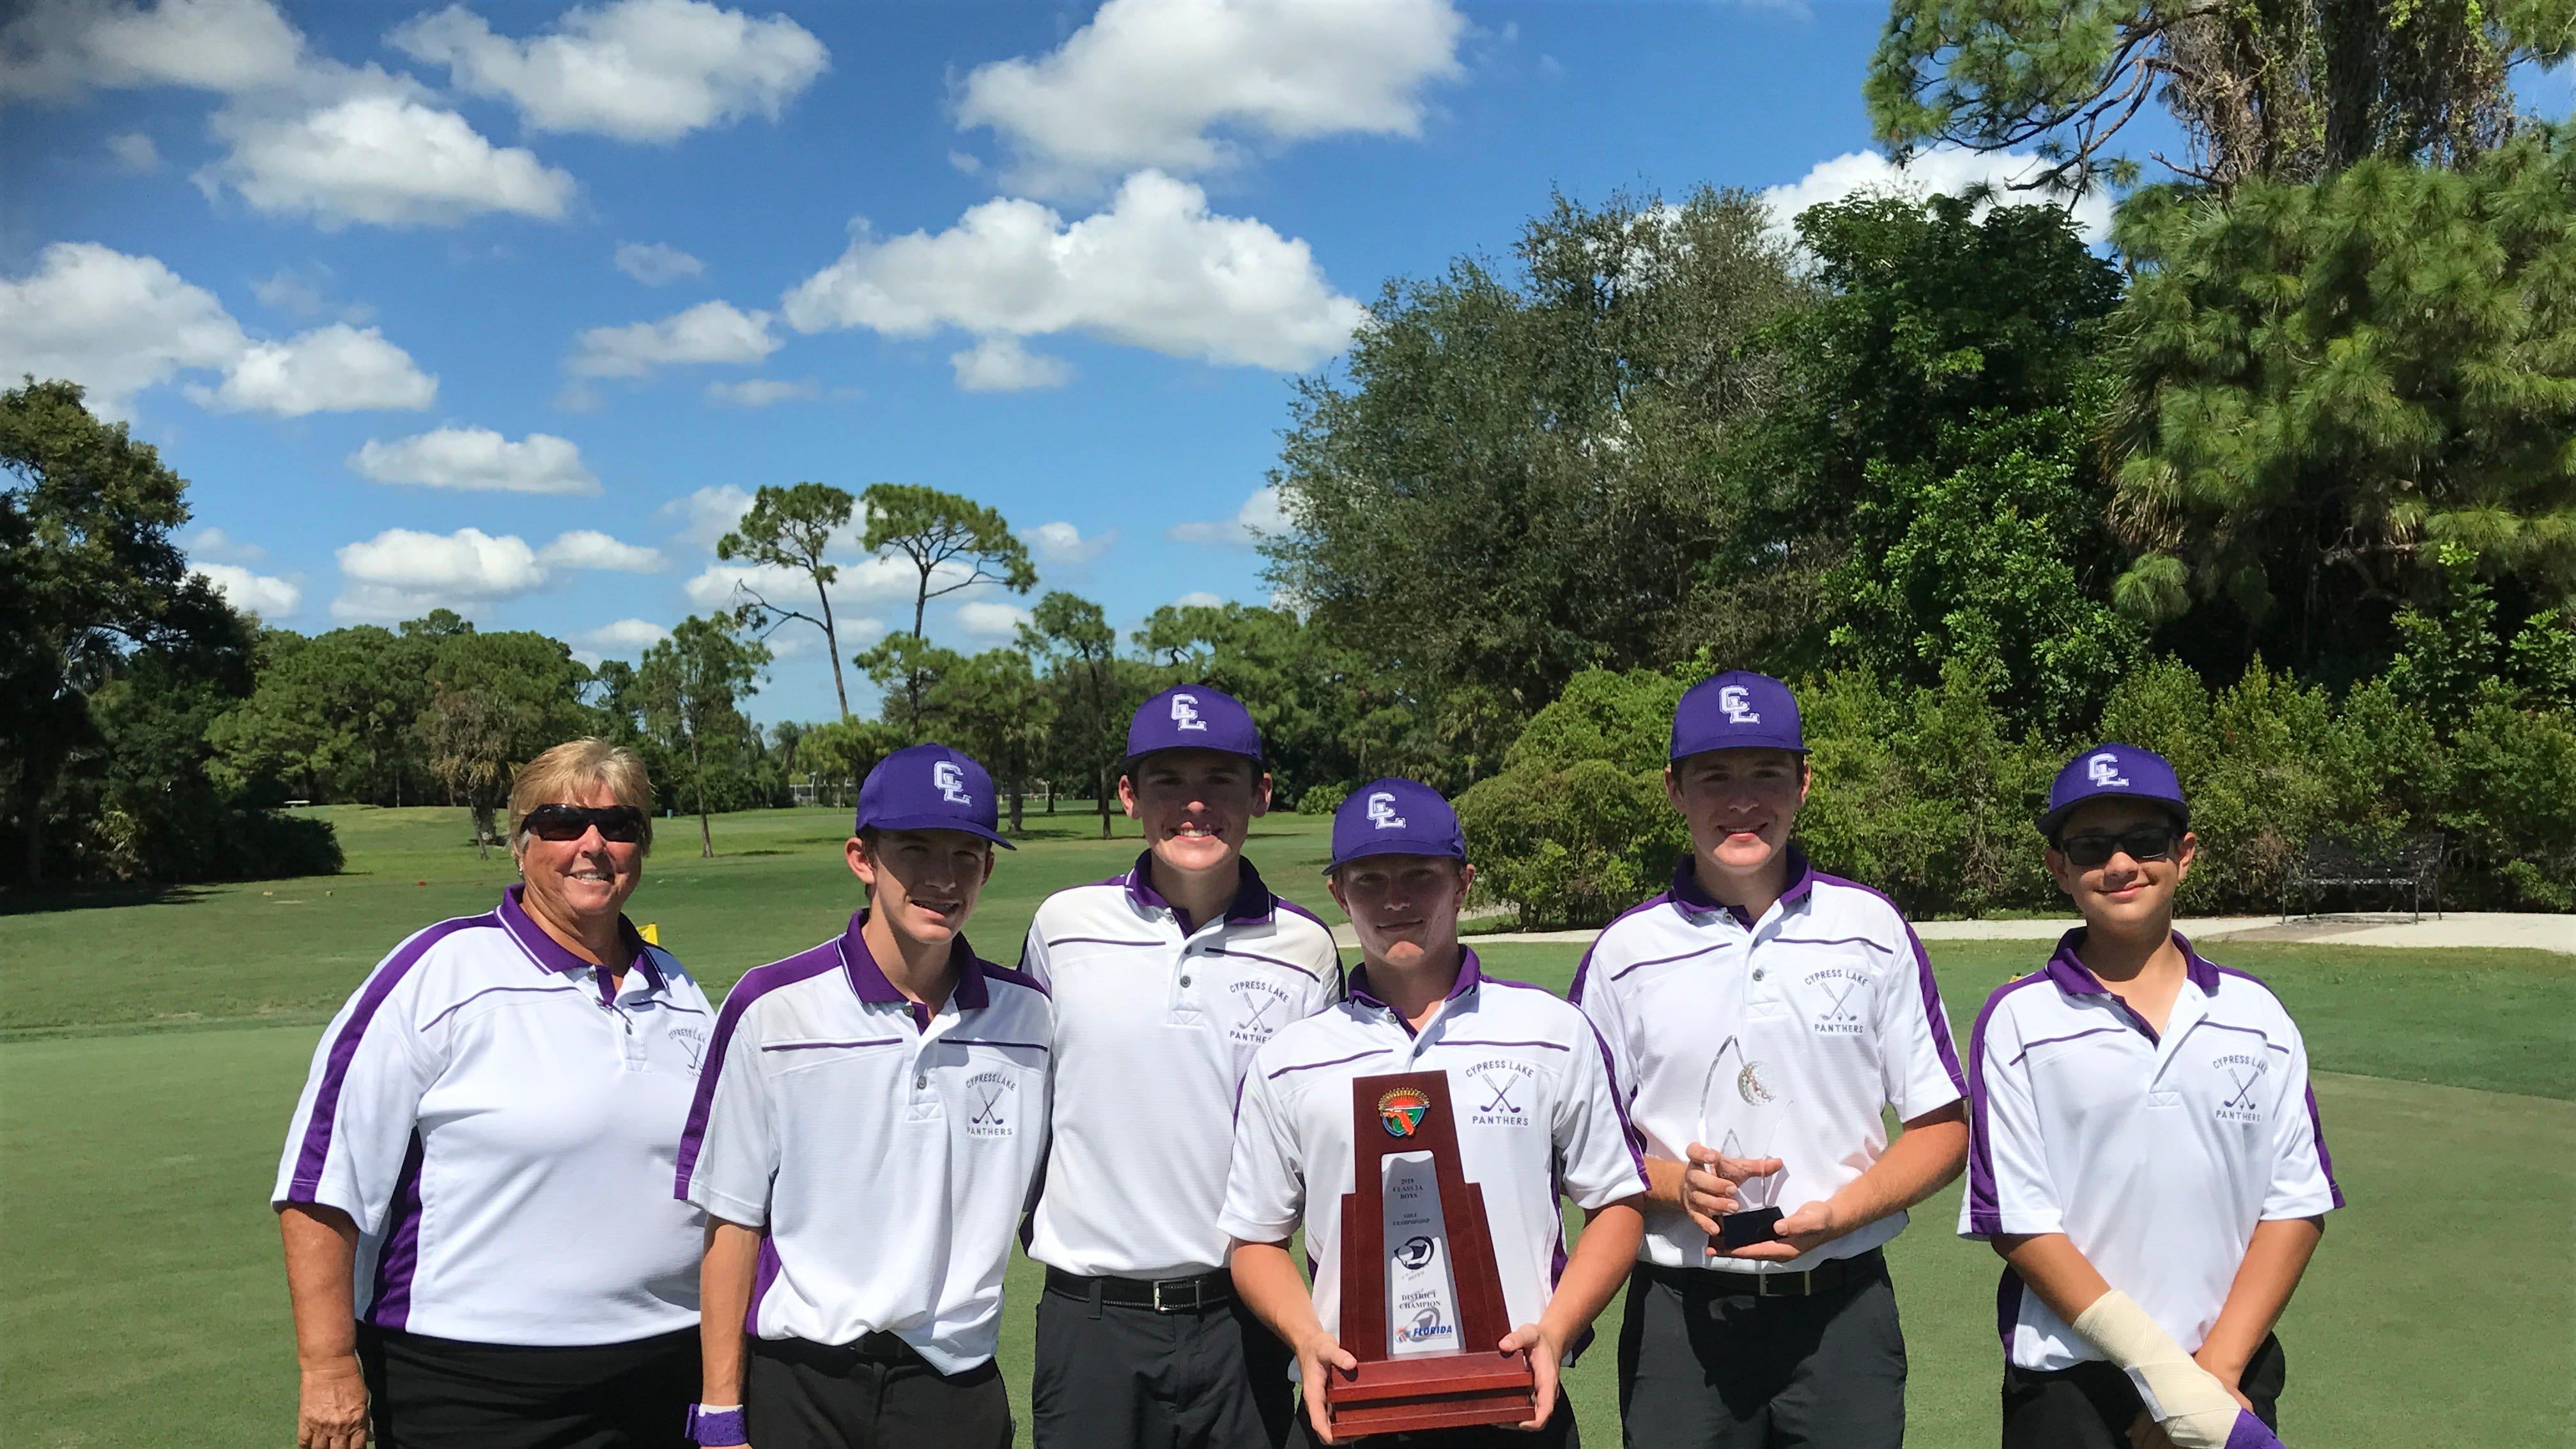 High school golf districts: Cypress Lake boys; Bishop Verot, North Fort Myers girls win titles